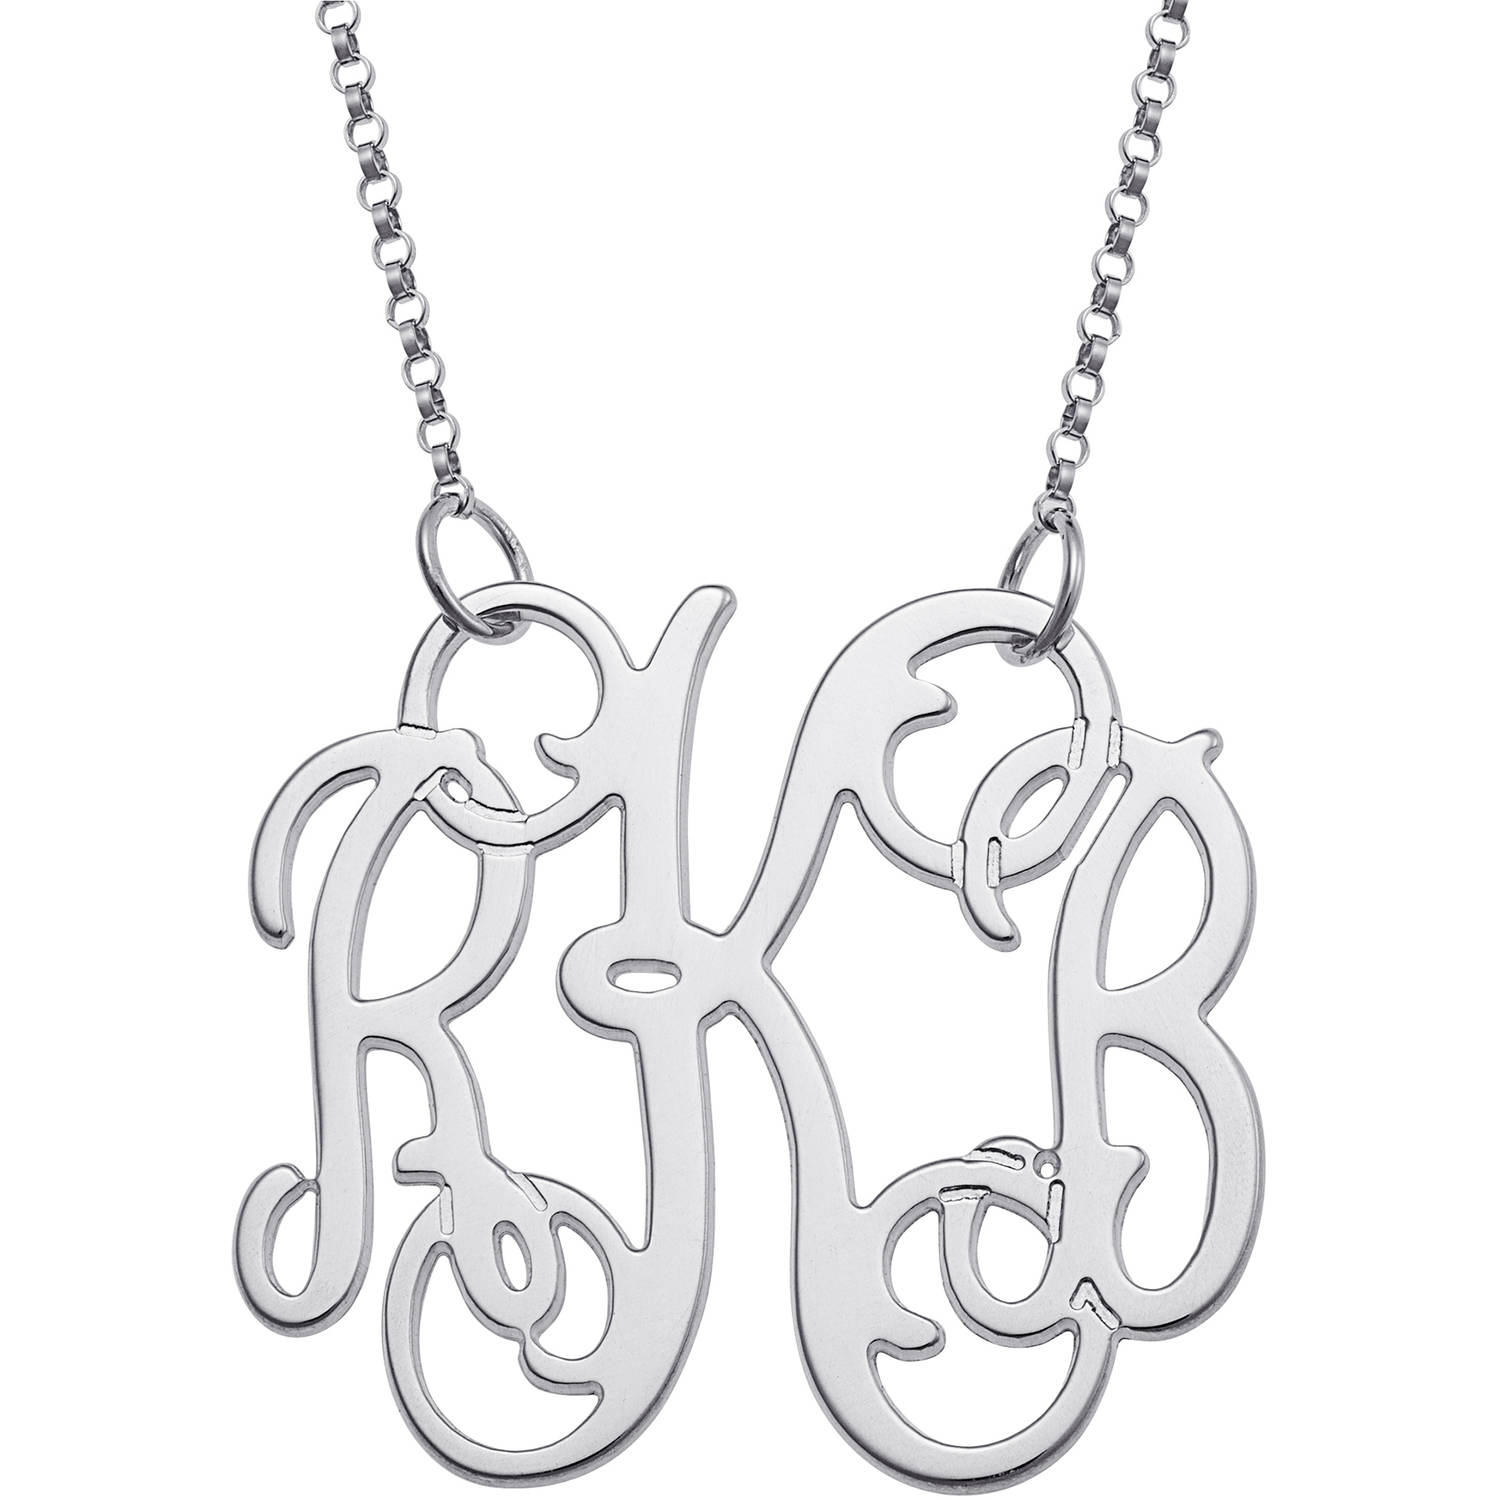 Personalized Sterling Silver Fancy 3-Initial Monogram Necklace